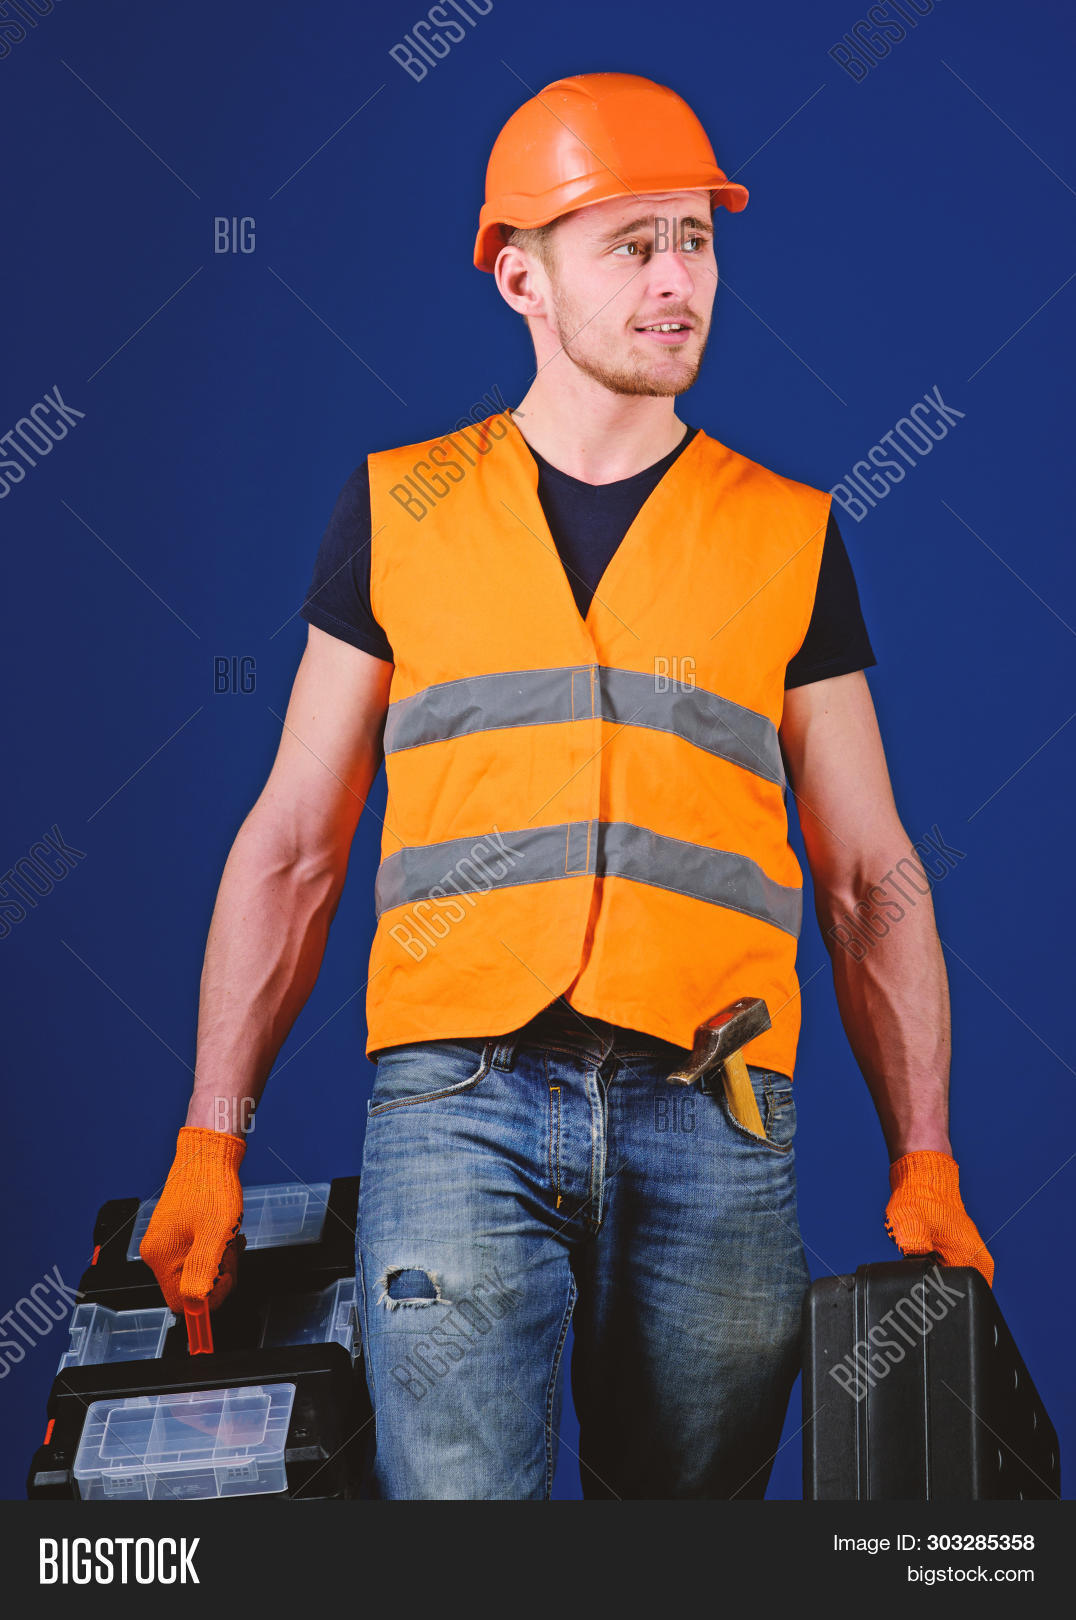 Handyman, Repairman On Dreamy Face Goes And Carries Bags With Professional Equipment. Man In Helmet,